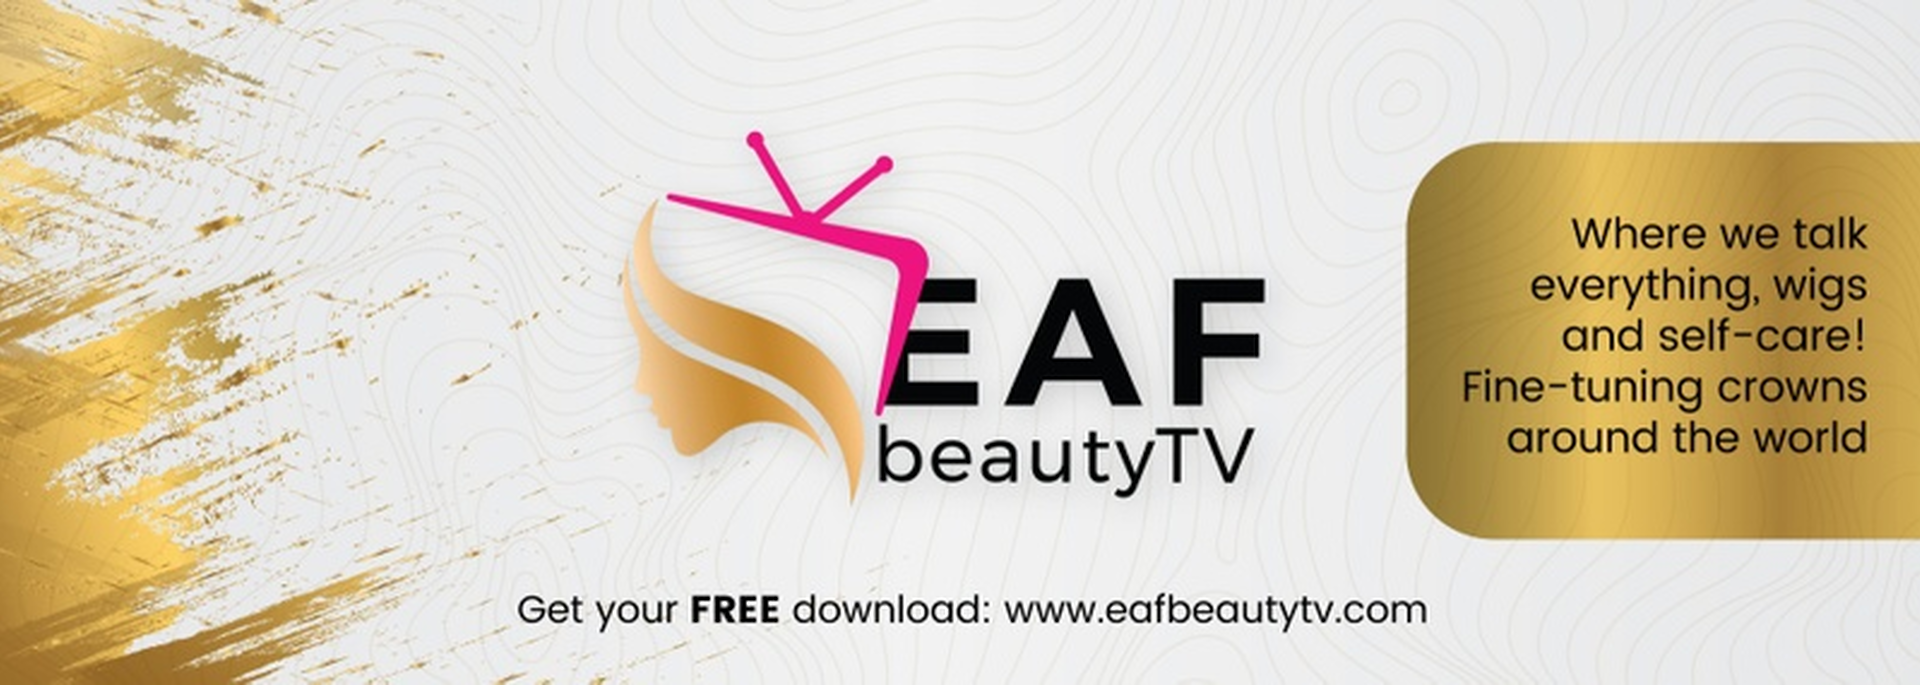 EafbeautyTV channel